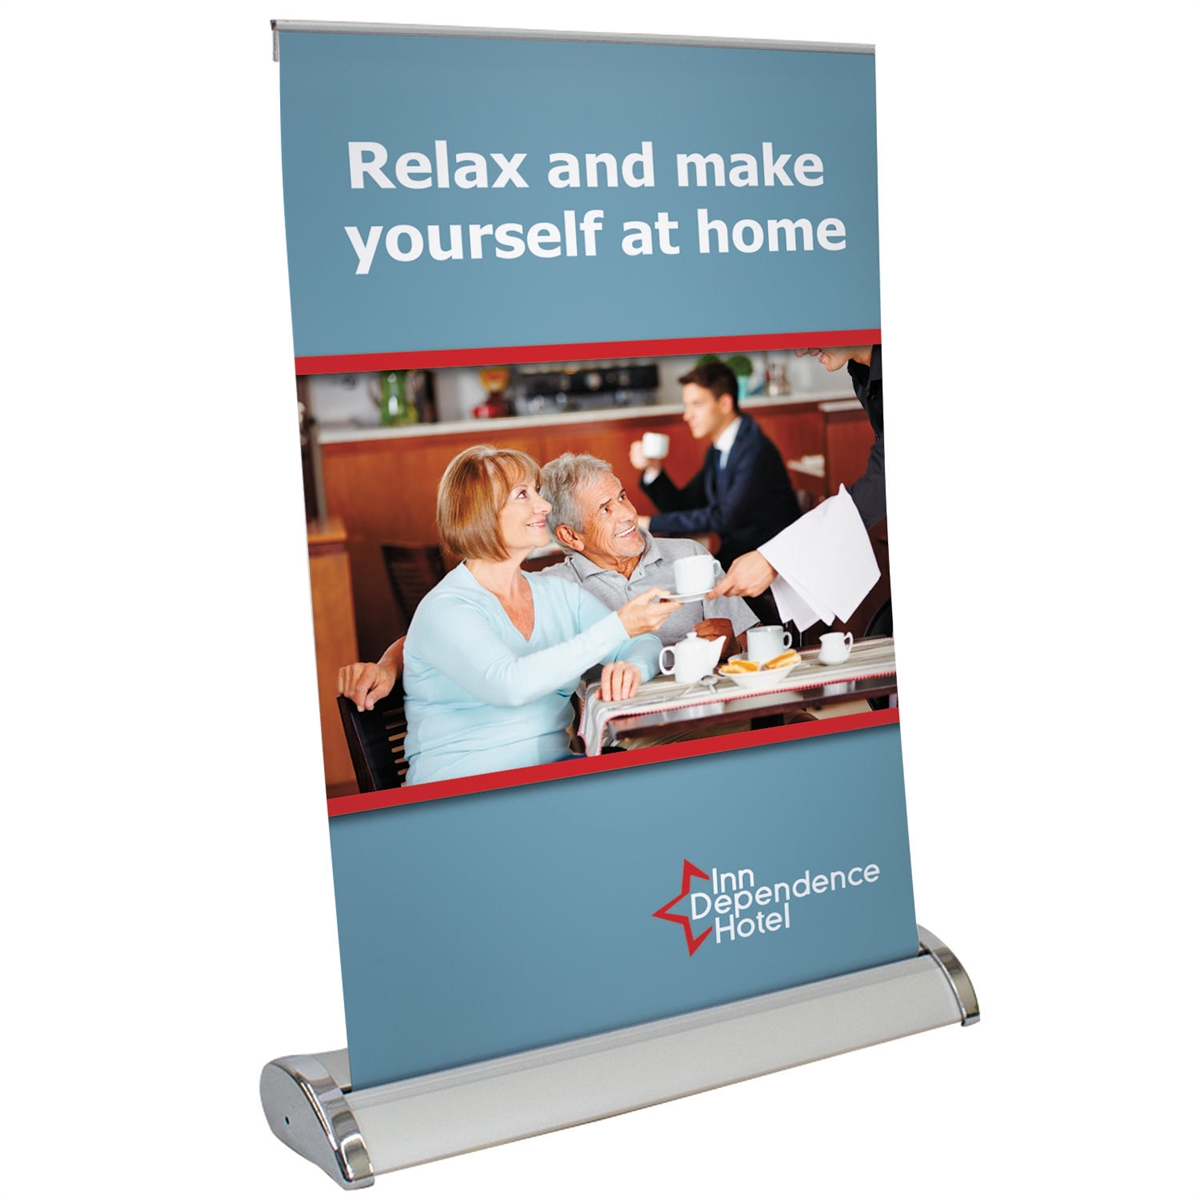 Table top product display - 11in X 17in Retractable Table Top Banner Stand The Large Pro Retractor Table Top Banner